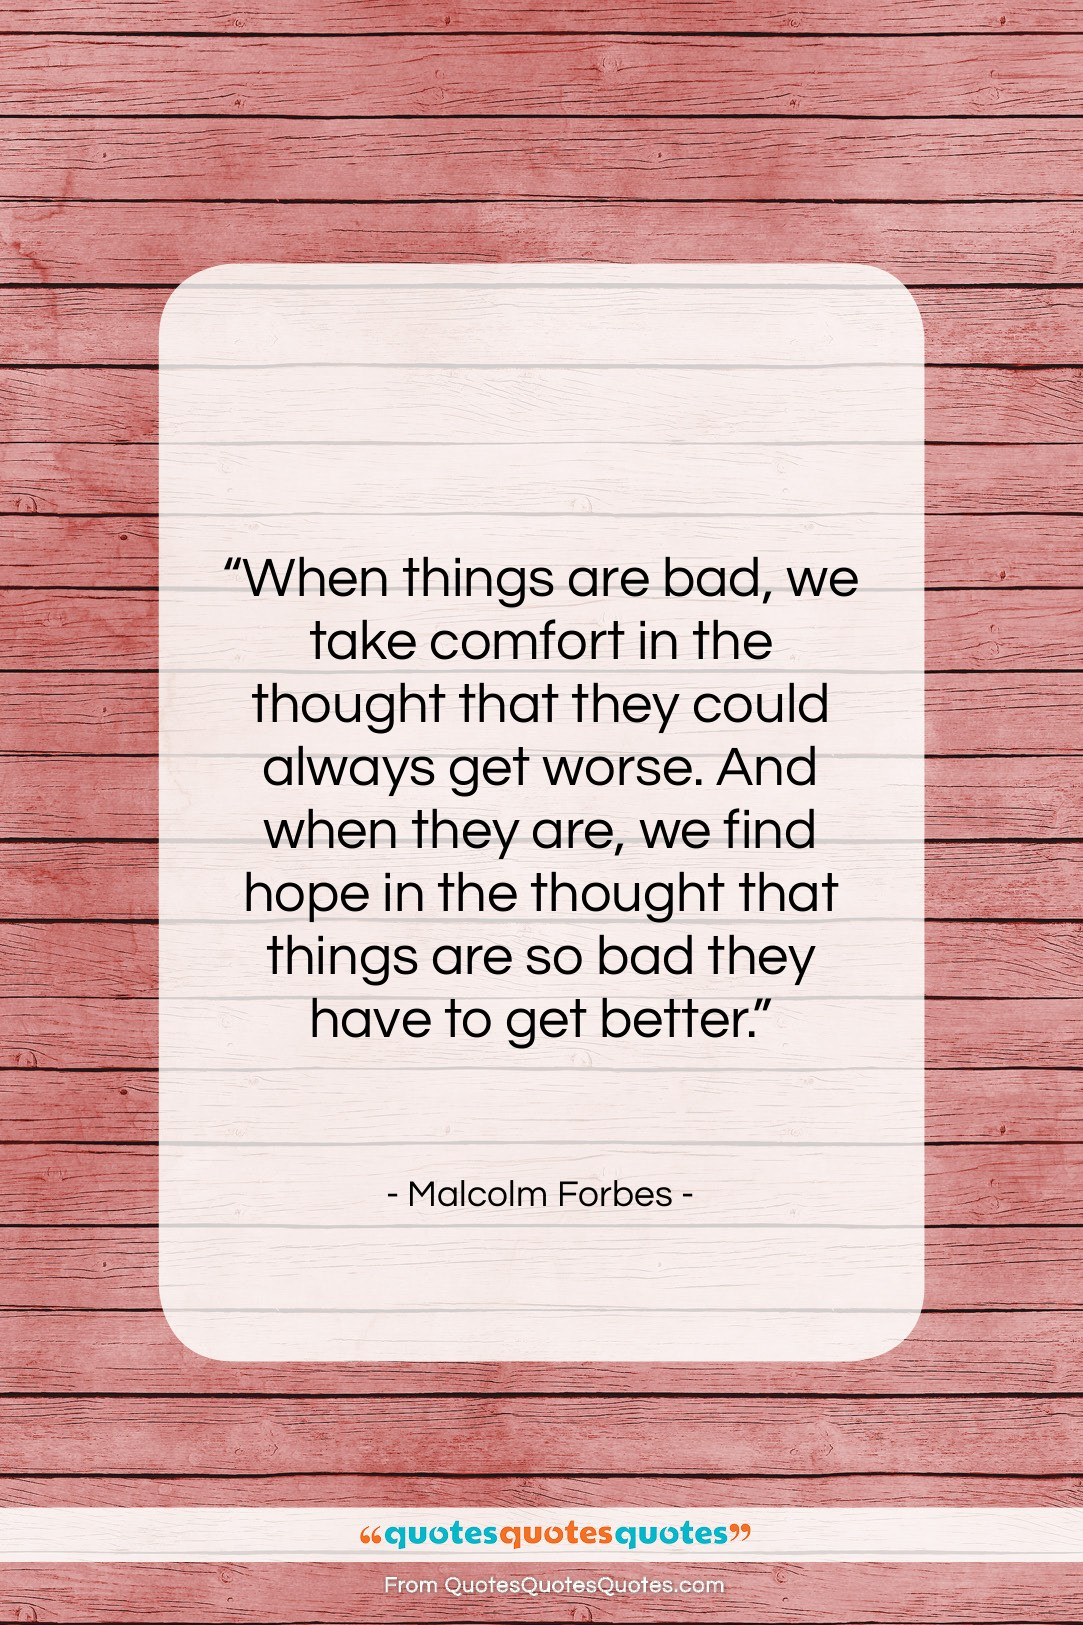 """Malcolm Forbes quote: """"When things are bad, we take comfort…""""- at QuotesQuotesQuotes.com"""